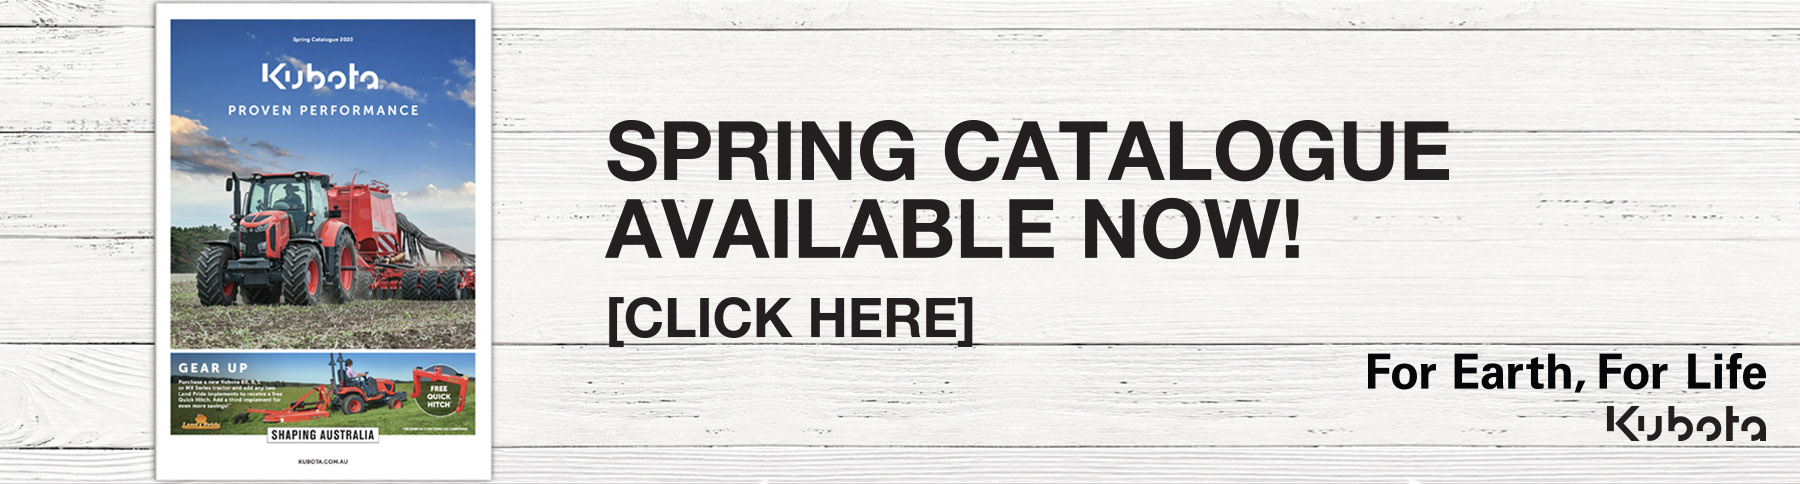 Roylances_Kubota_Spring_catalog_web_header_0720